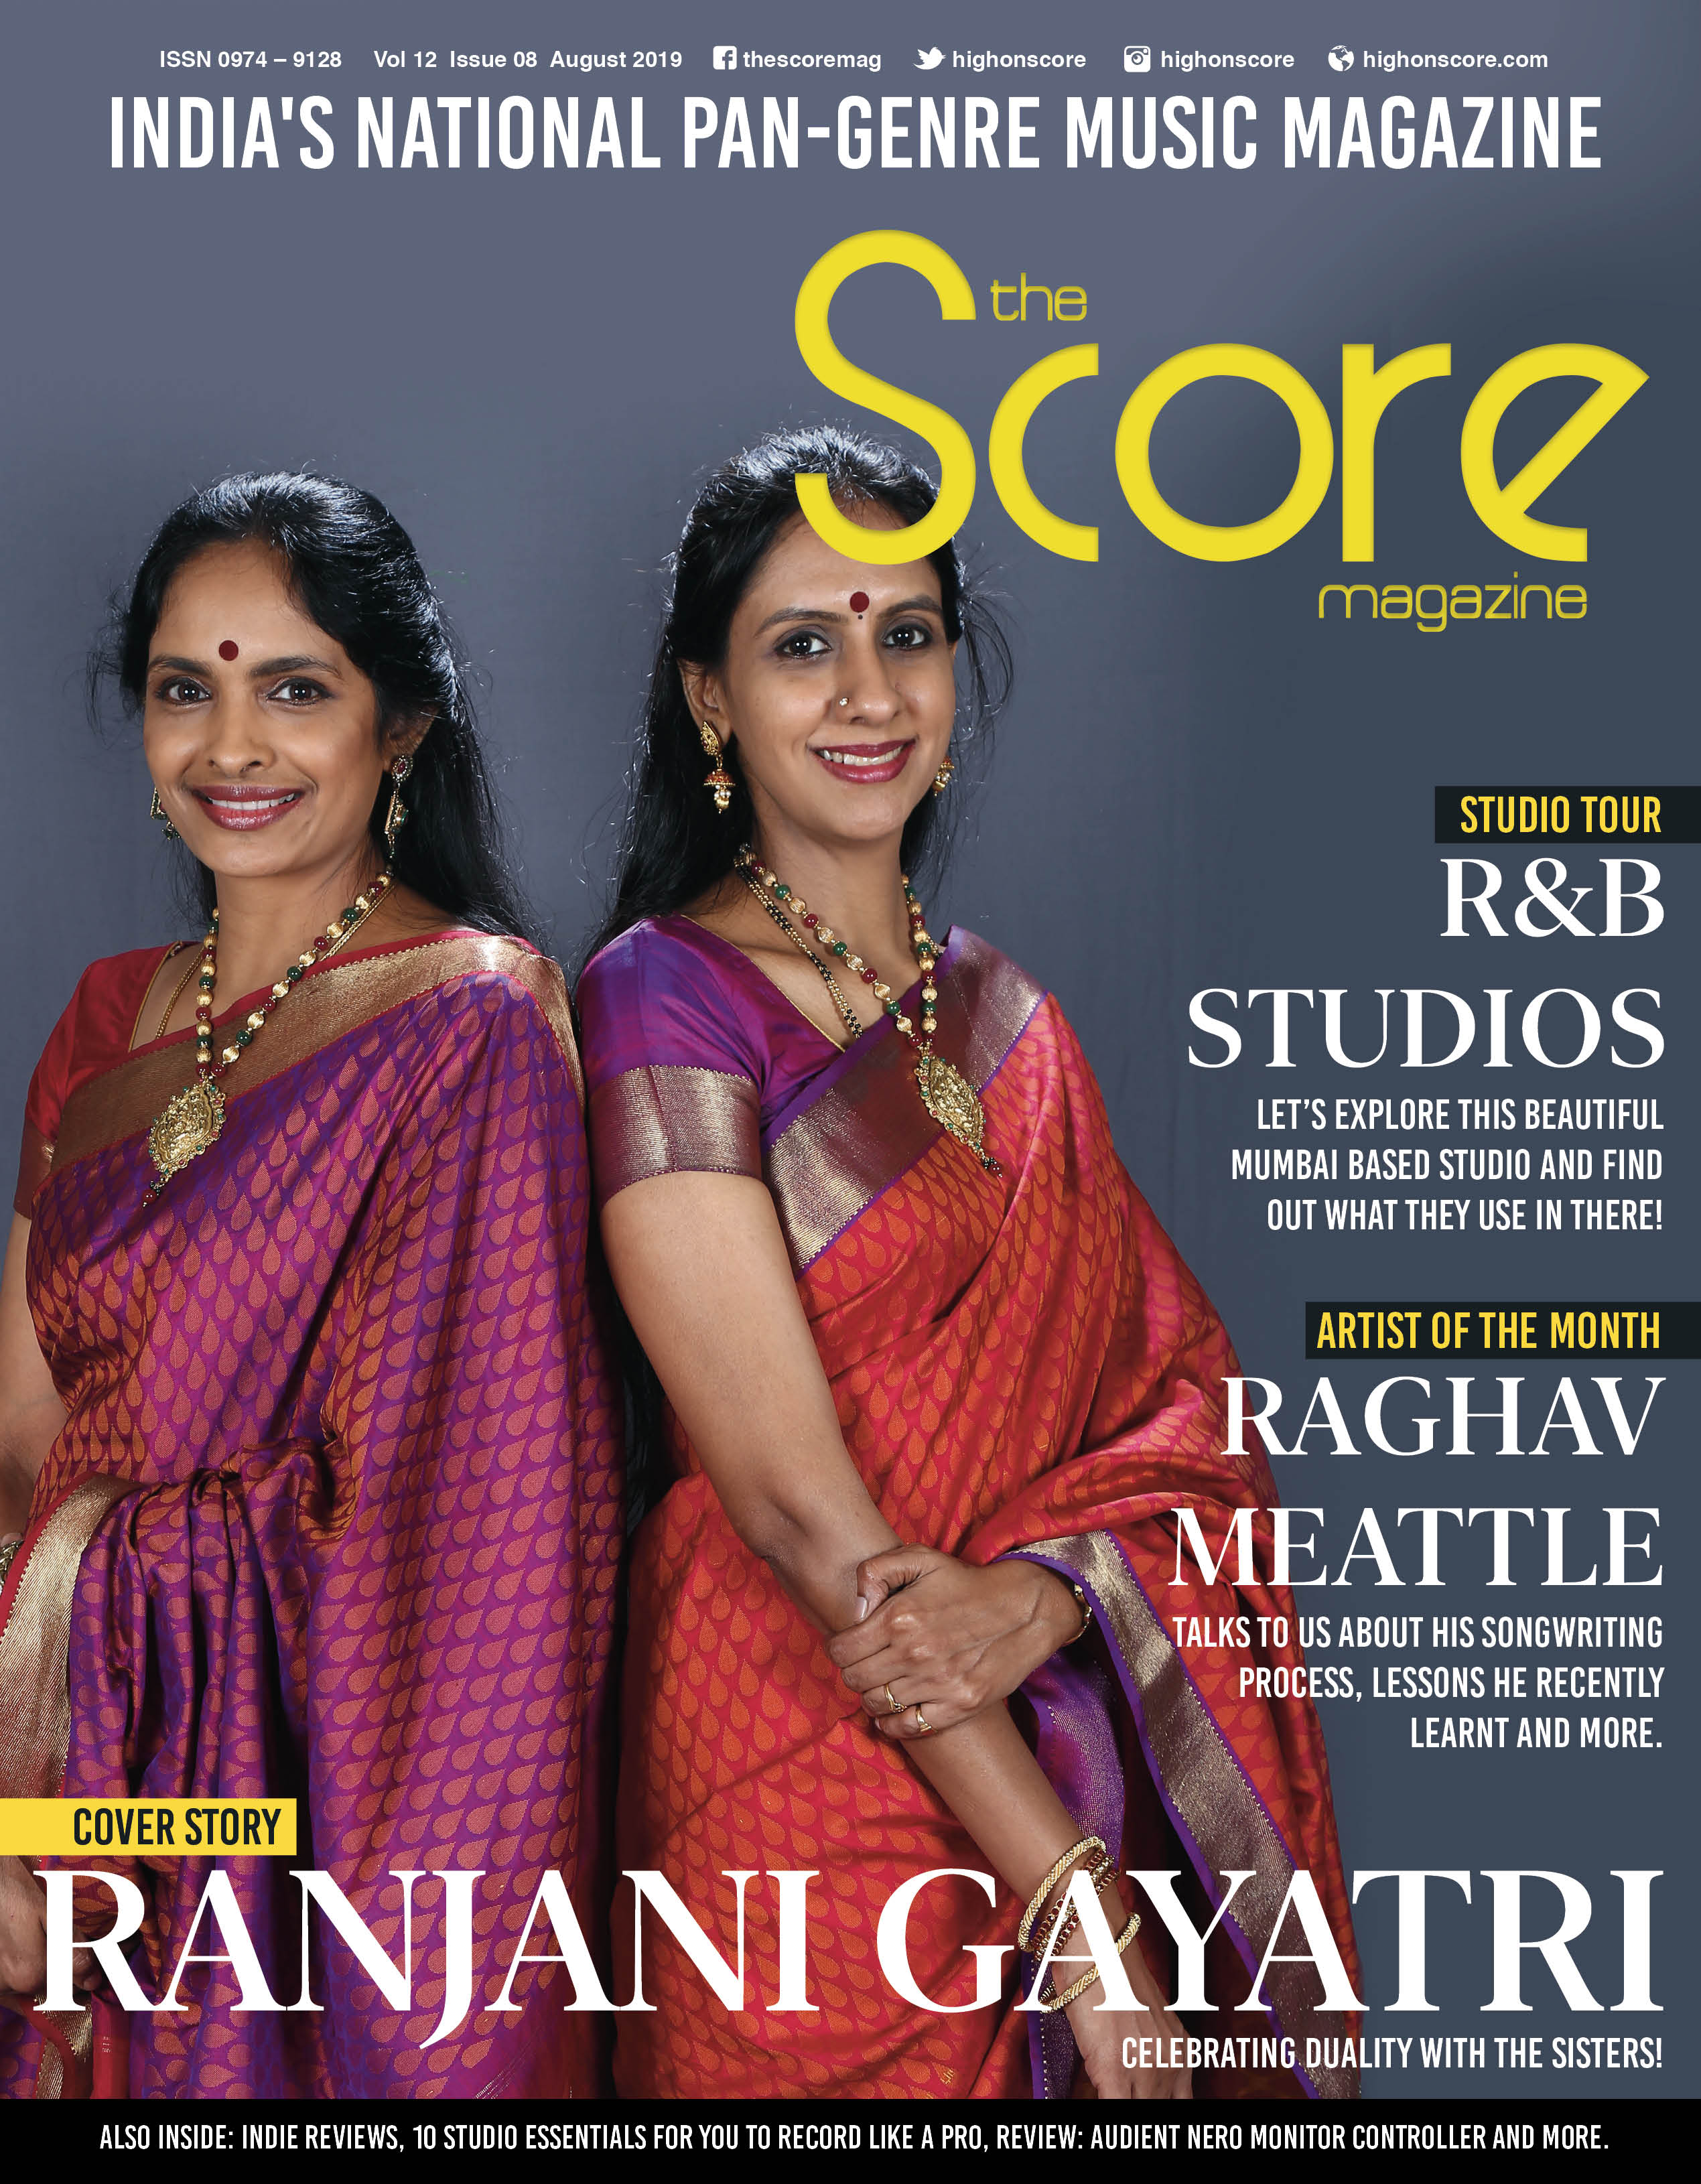 August 2019 issue featuring Ranjani-Gayatri on the cover